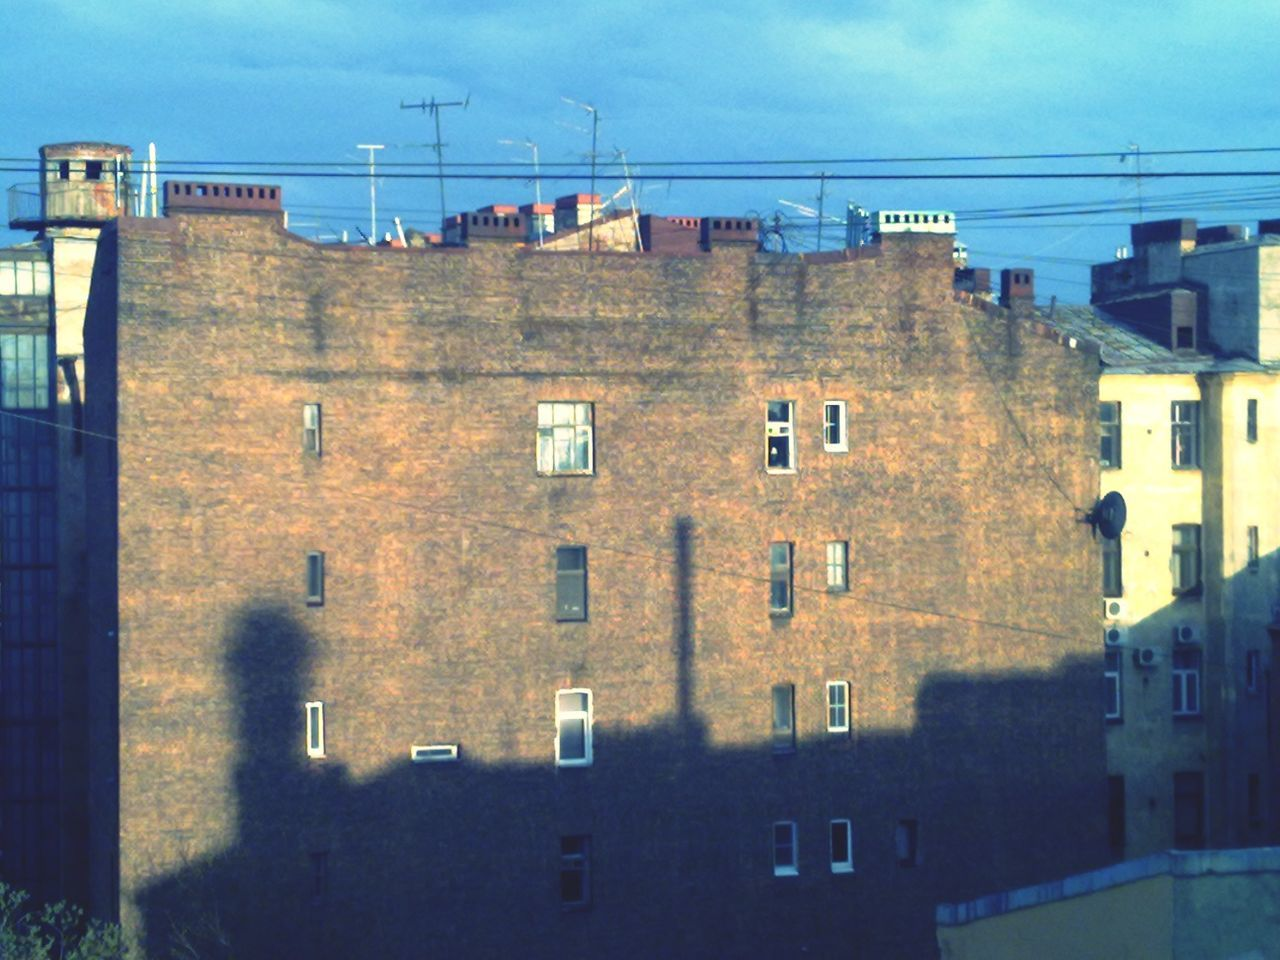 architecture, building exterior, built structure, window, sky, no people, day, residential building, cloud - sky, outdoors, cable, prison